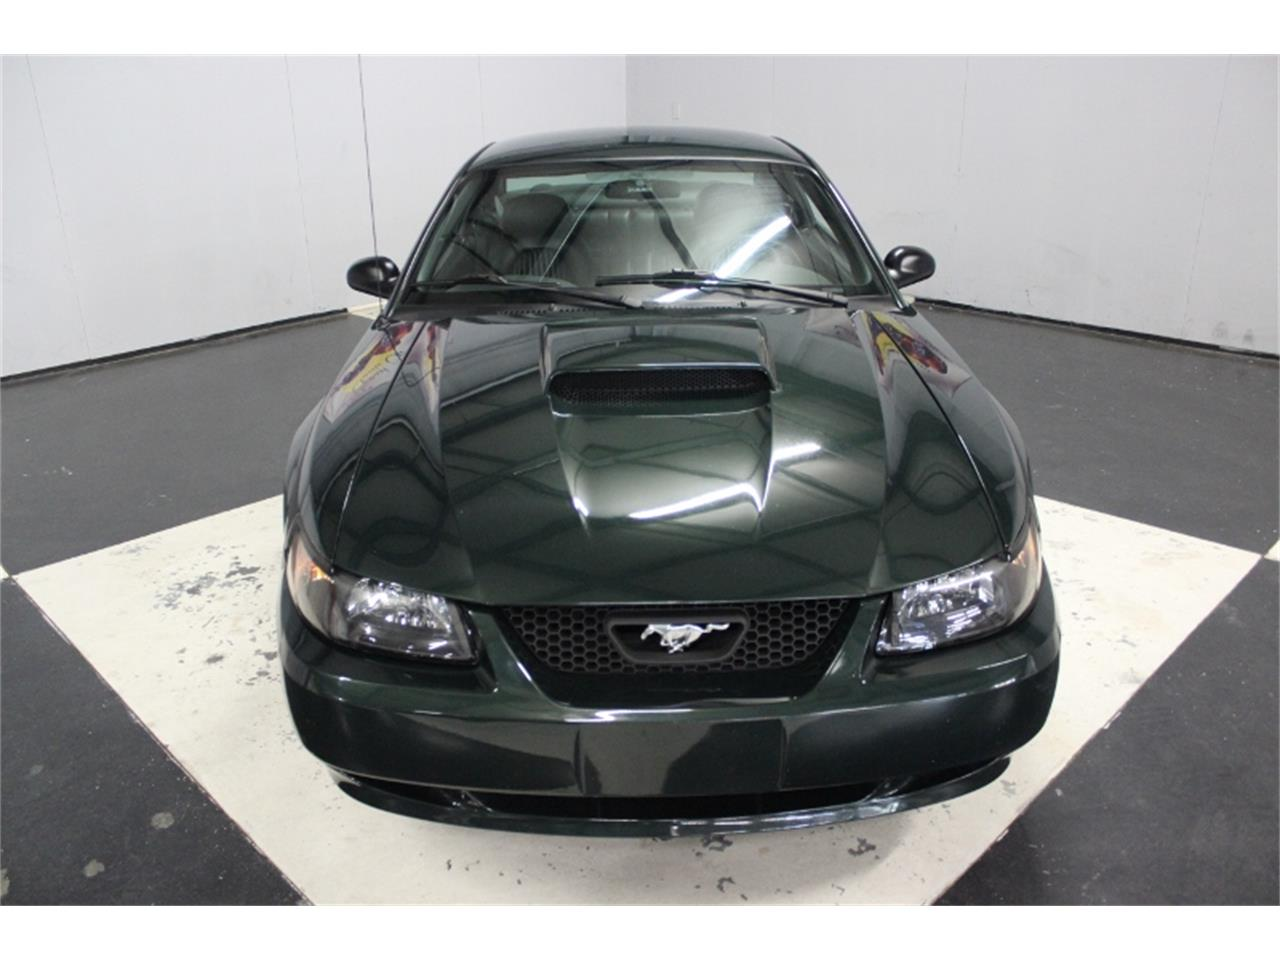 Large Picture of '01 Ford Mustang - $12,000.00 Offered by East Coast Classic Cars - Q3GY